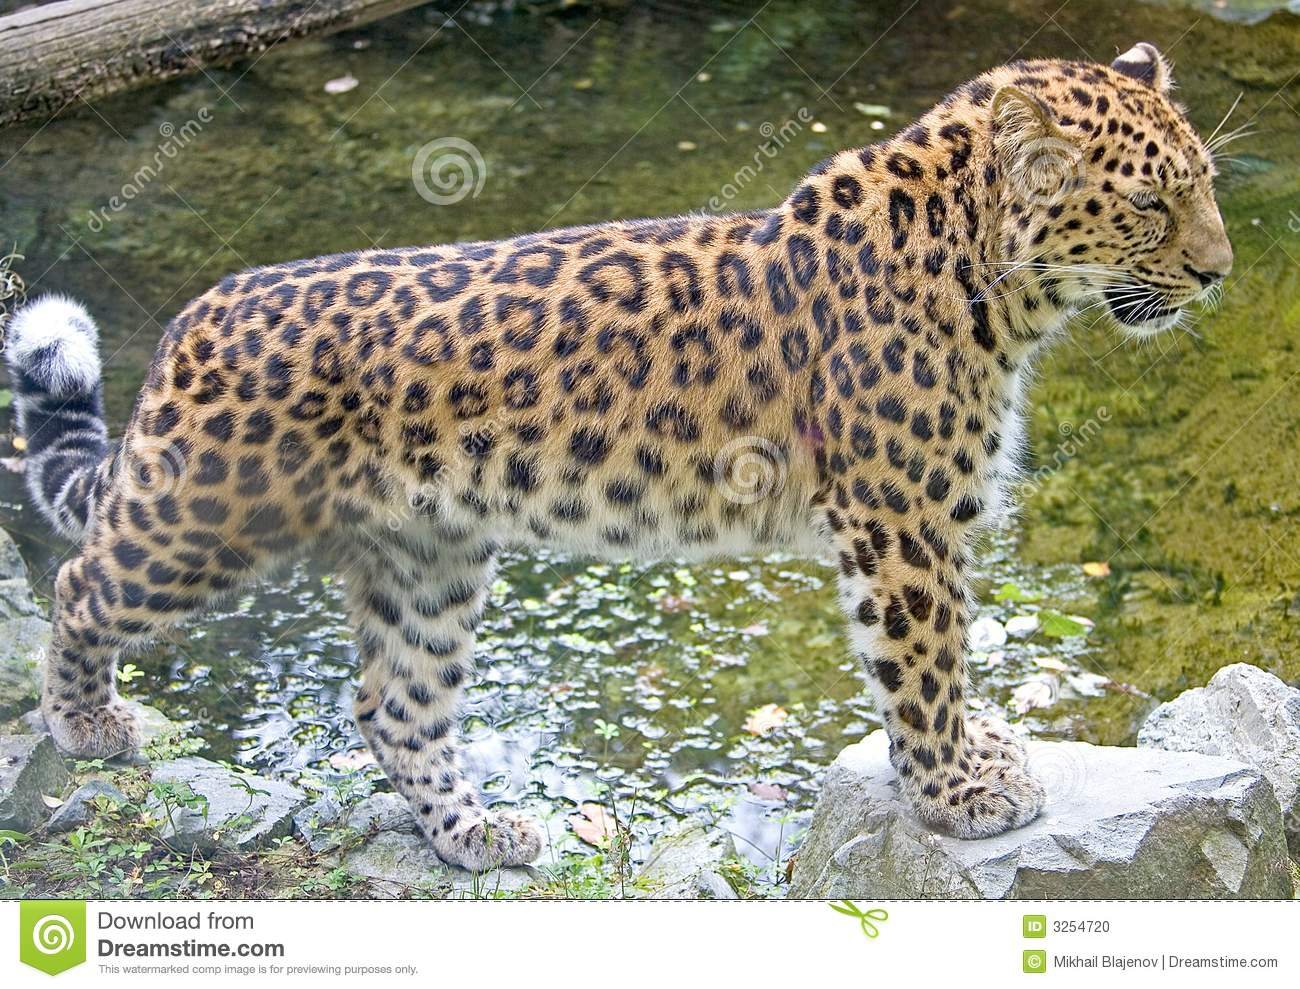 Amur Leopard clipart #16, Download drawings